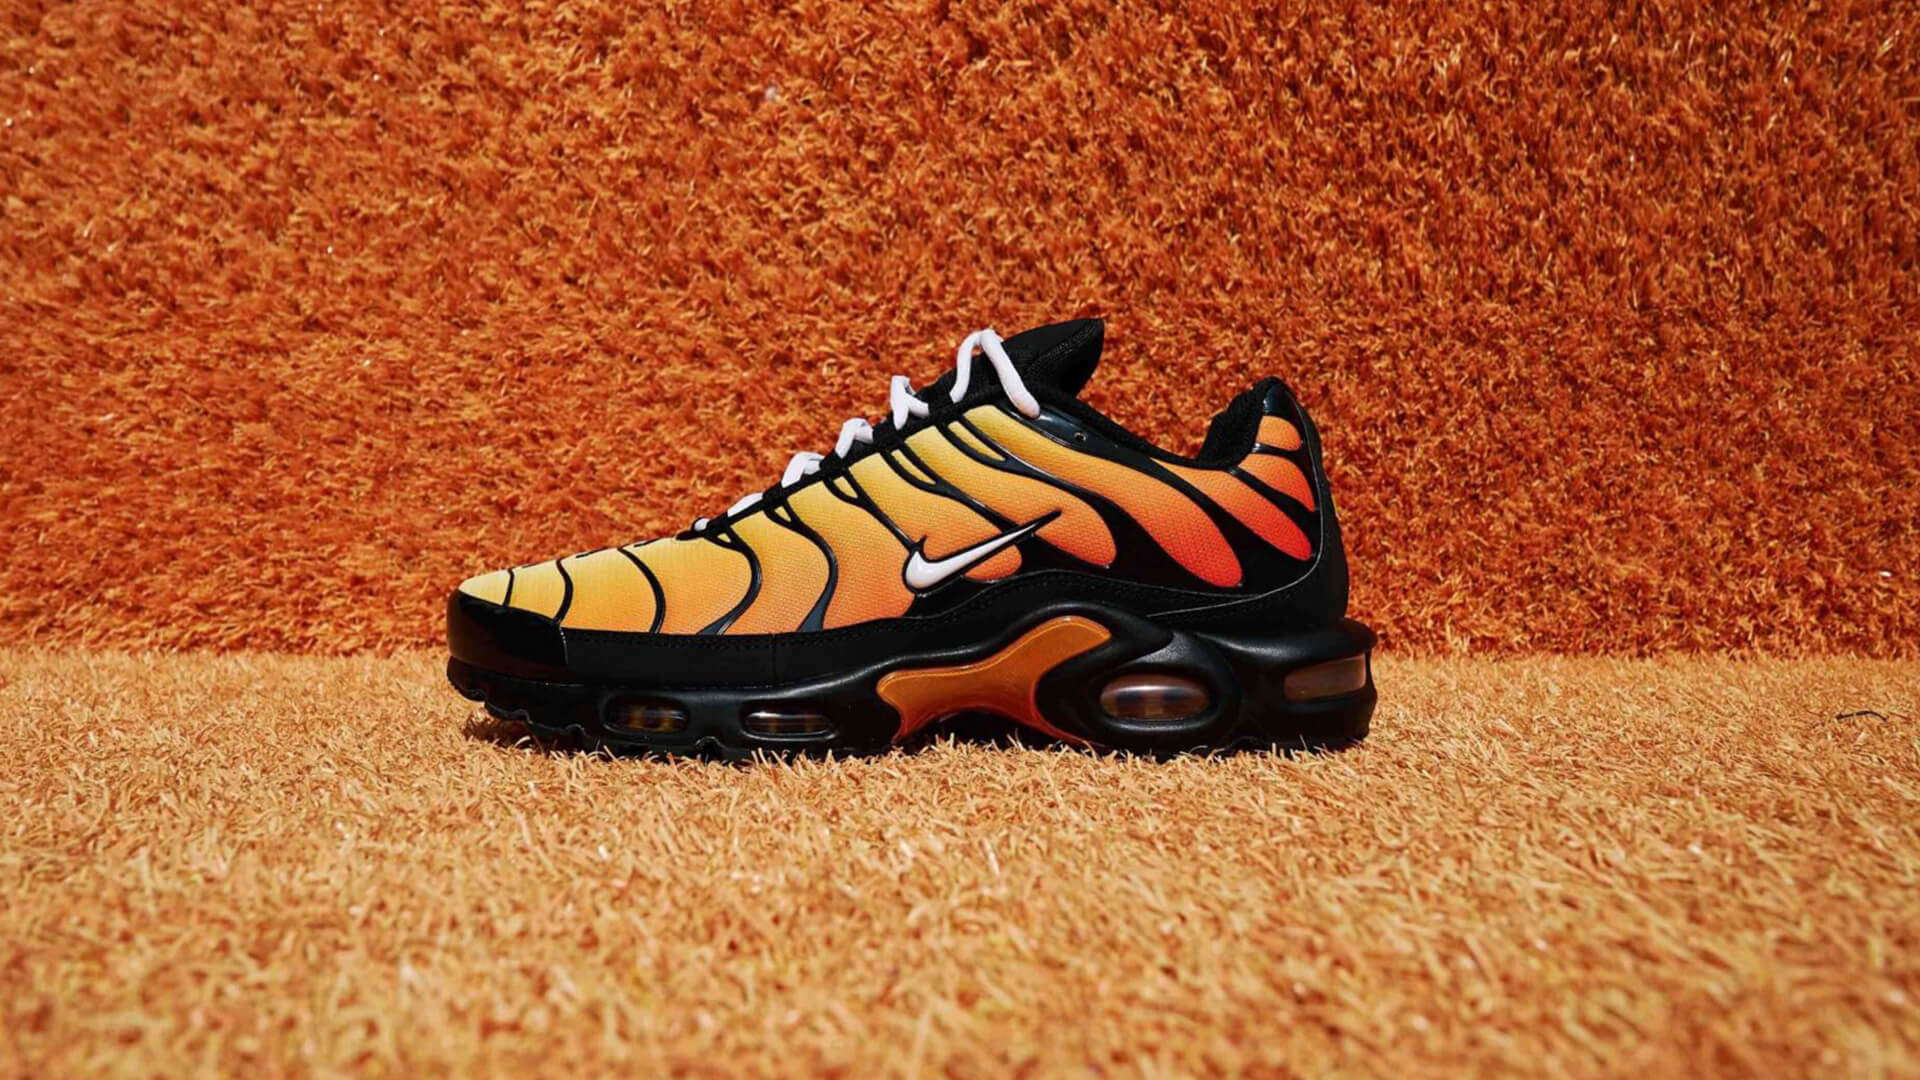 Where to buy Nike Air Max Plus TN Black, Gold, Red